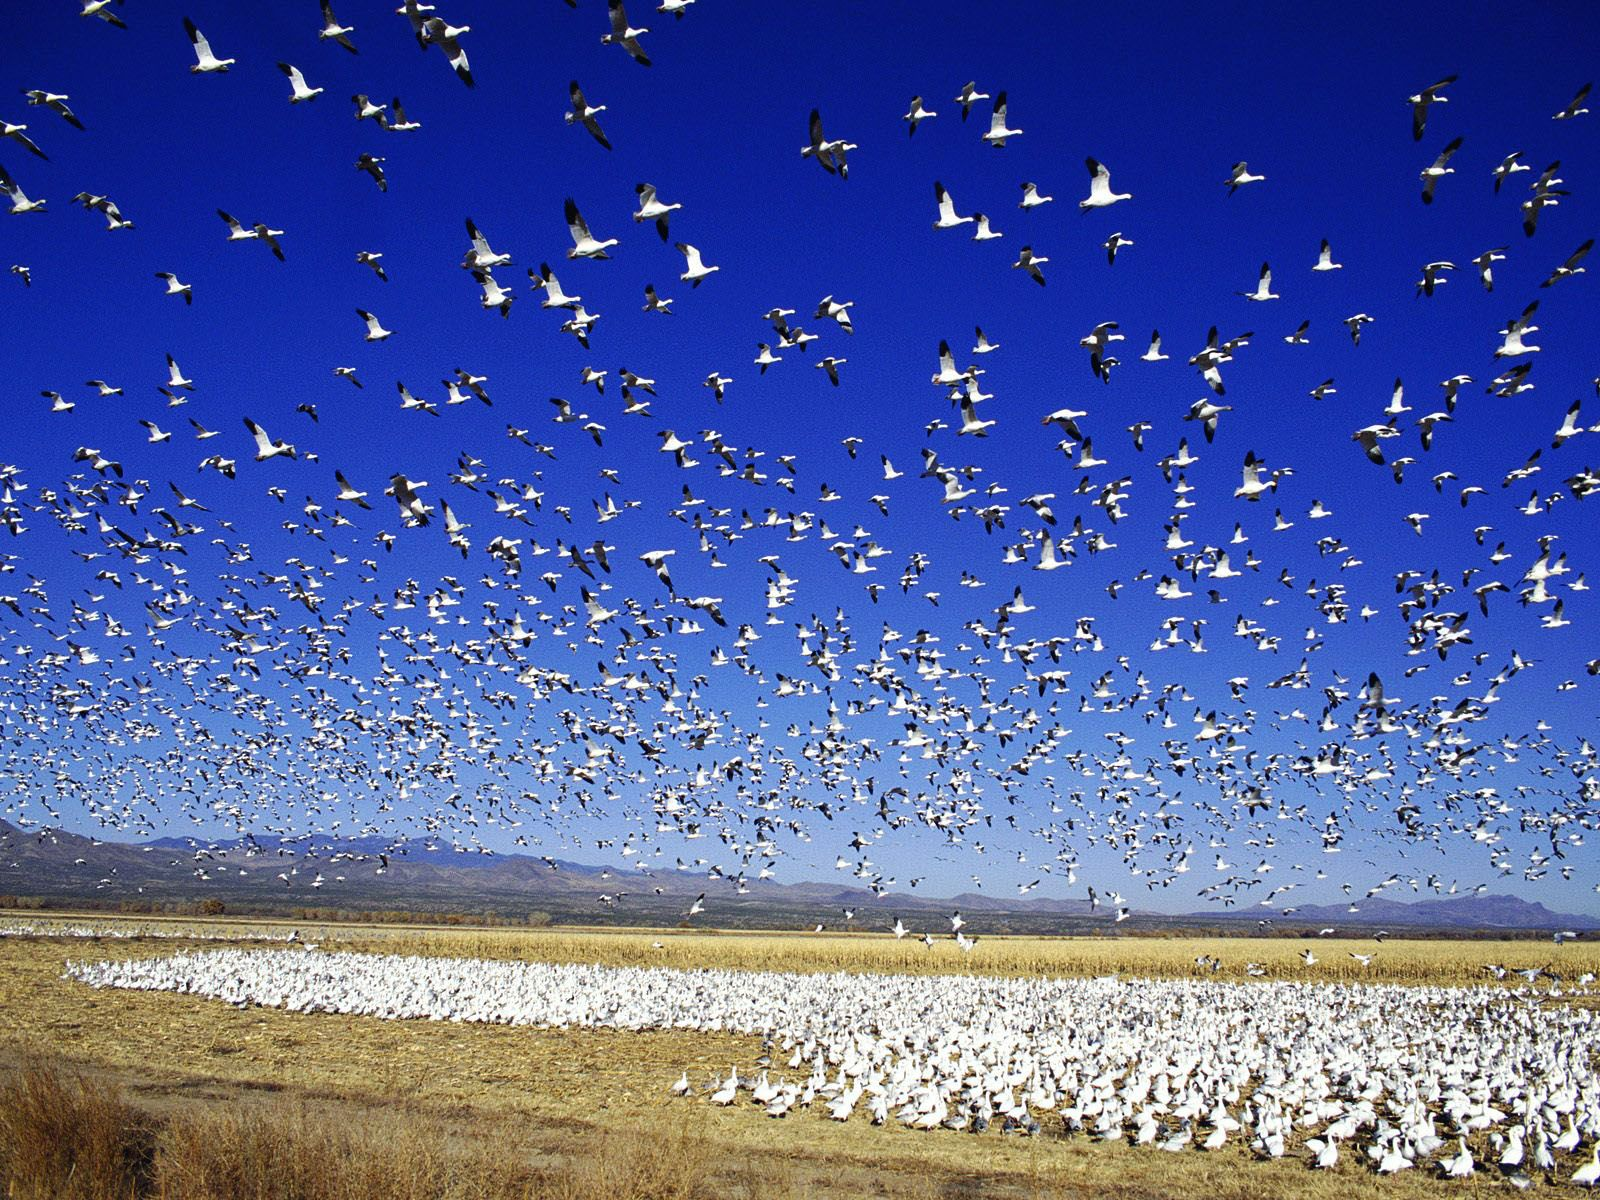 Snow Goose Wallpapers, Collection of Snow Goose Backgrounds, Snow